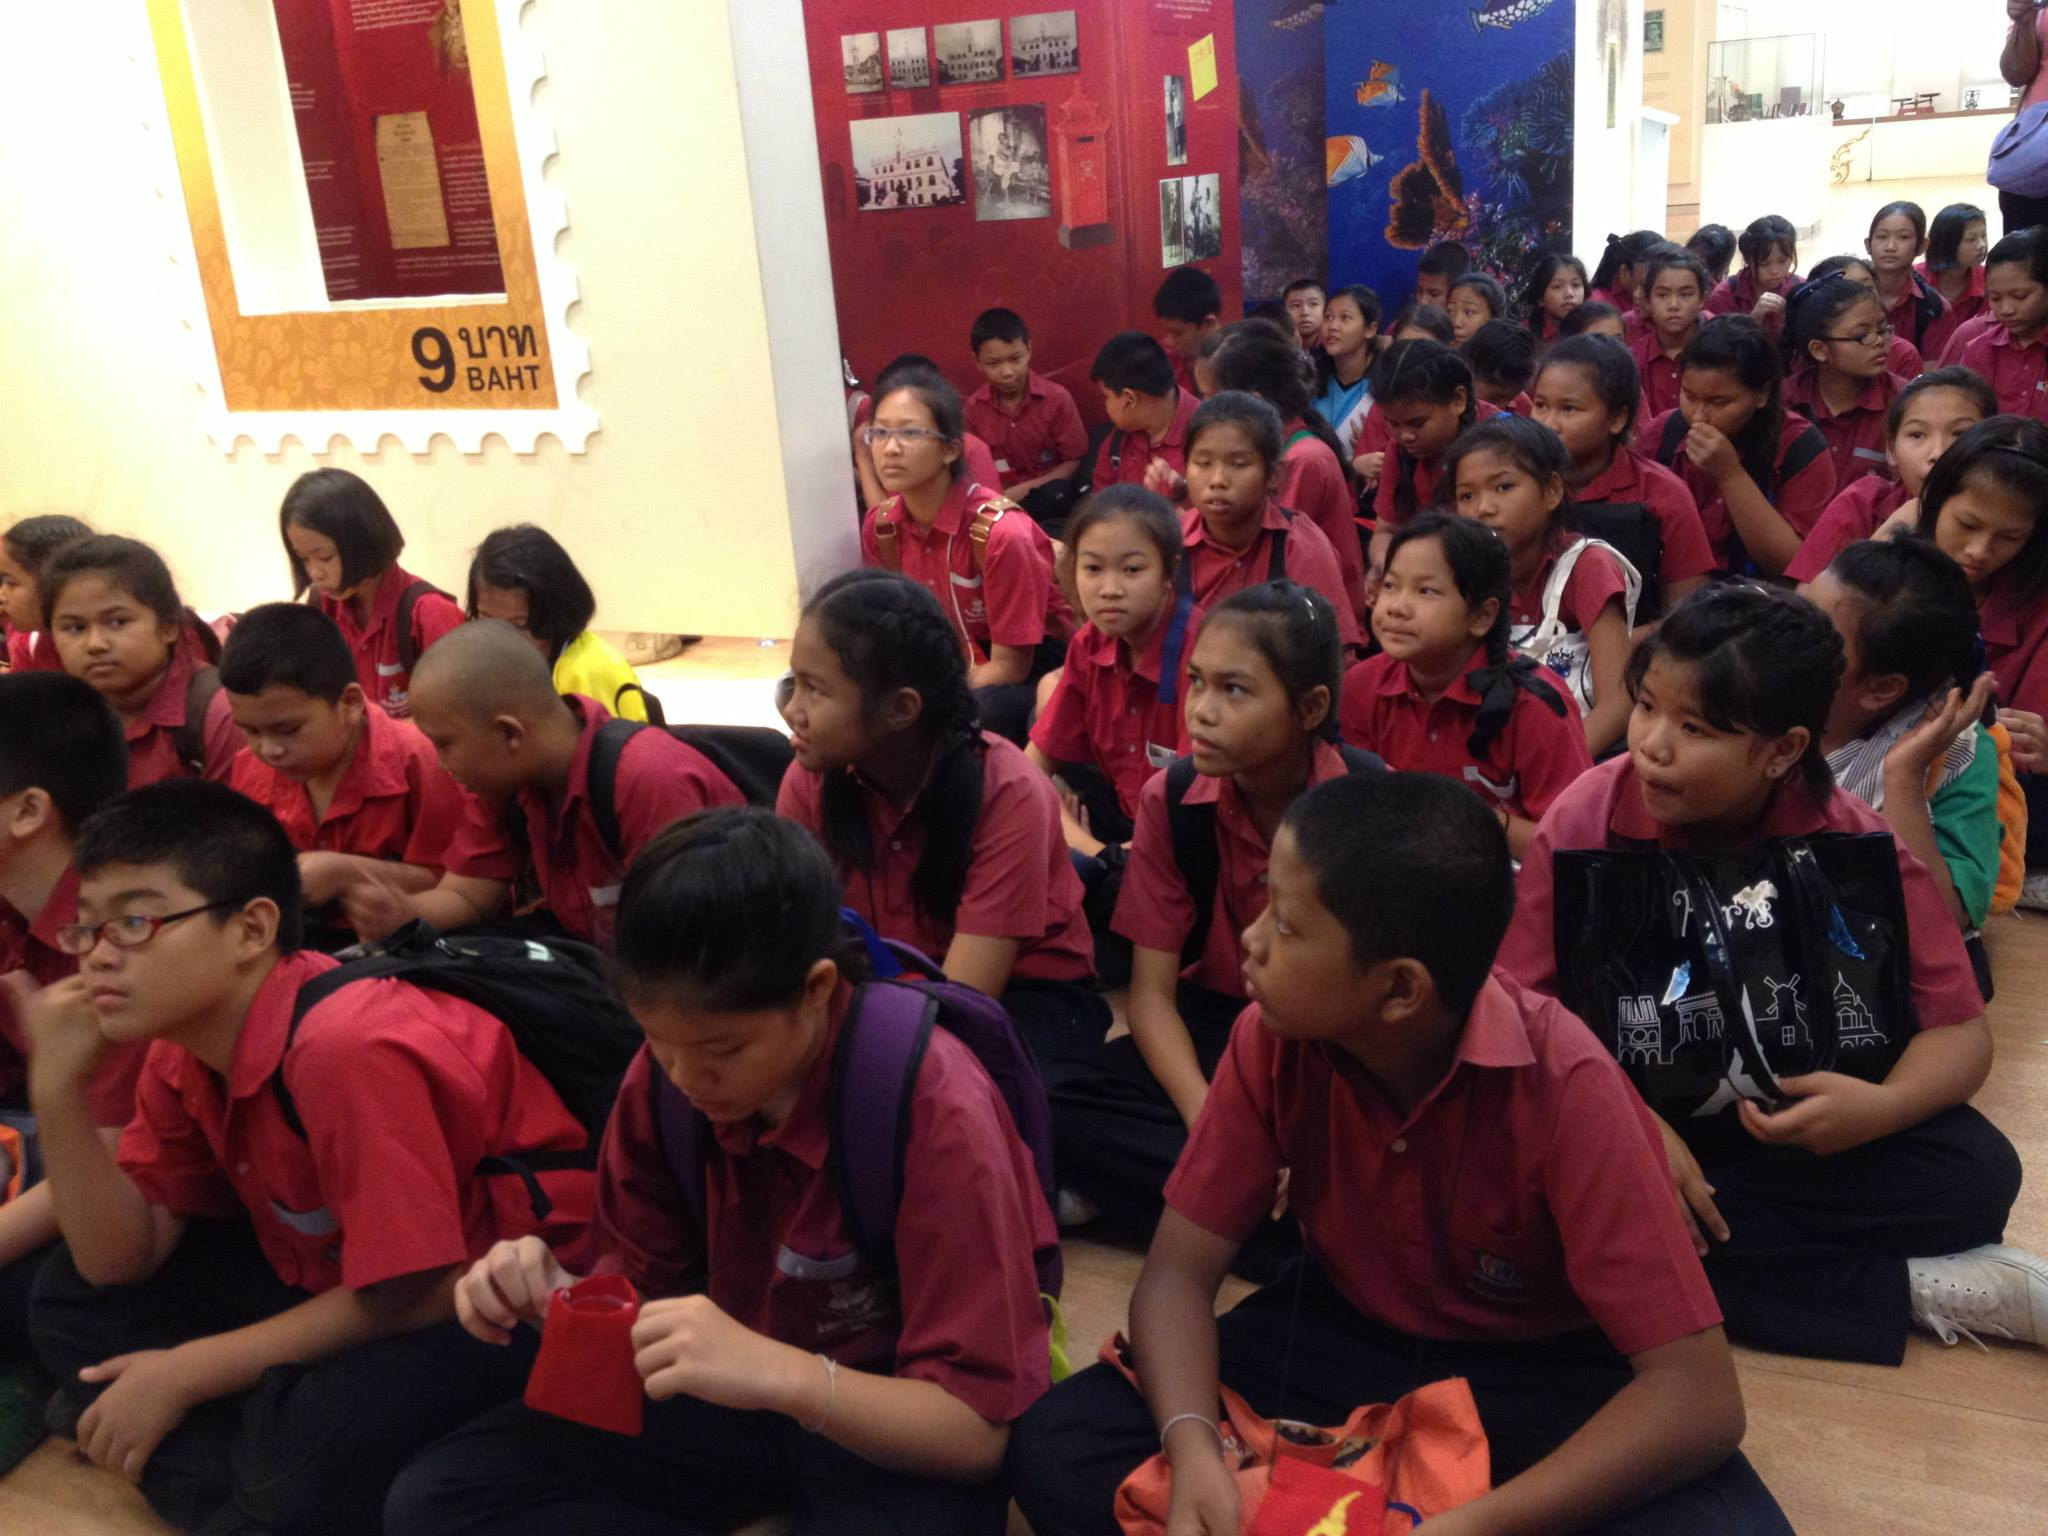 Thai kids learning about stamps during a fieldtrip to Sam Sen Nai Philatelic Museum in Bangkok. Photo taken in August 2013.